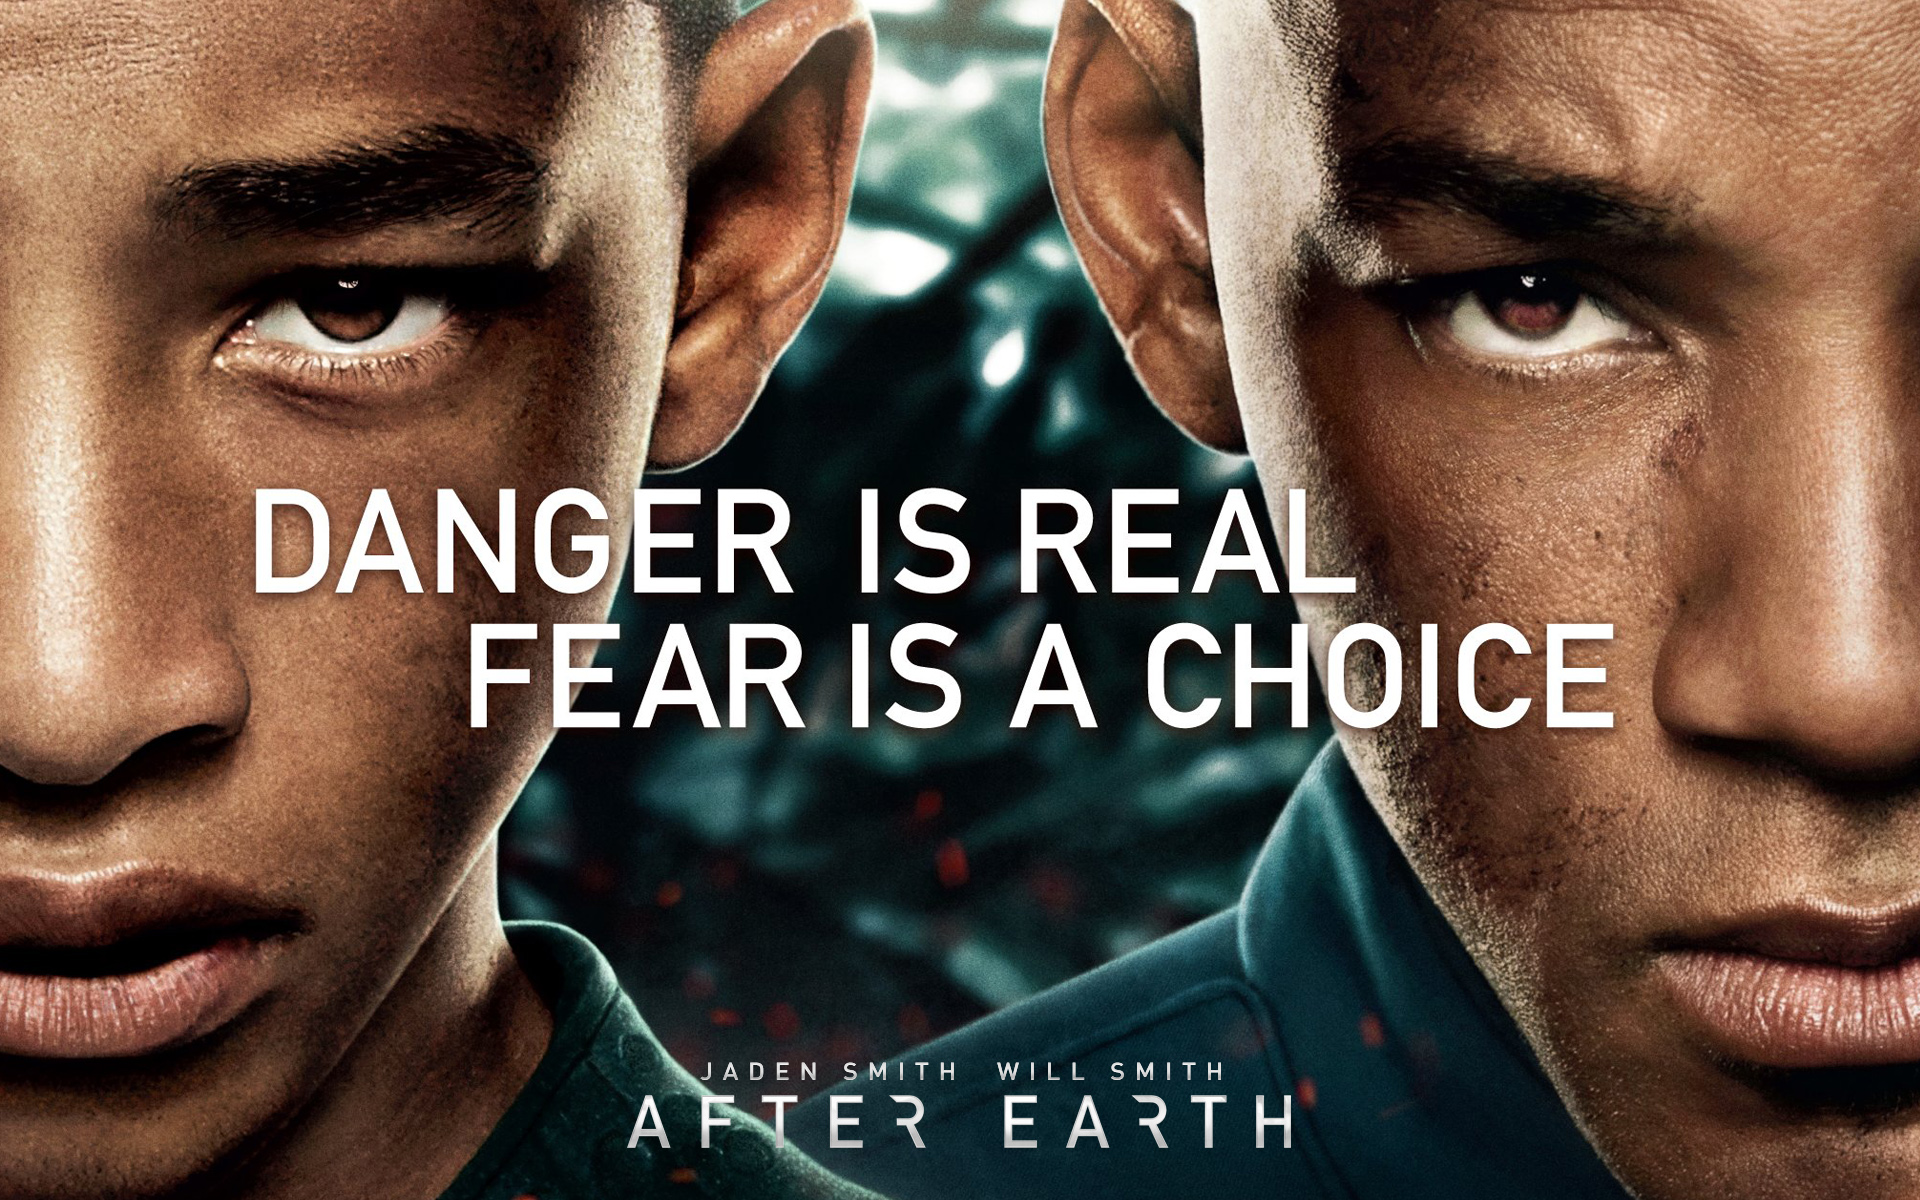 After Earth 4156642 1920x1200 All For Desktop 1920x1200